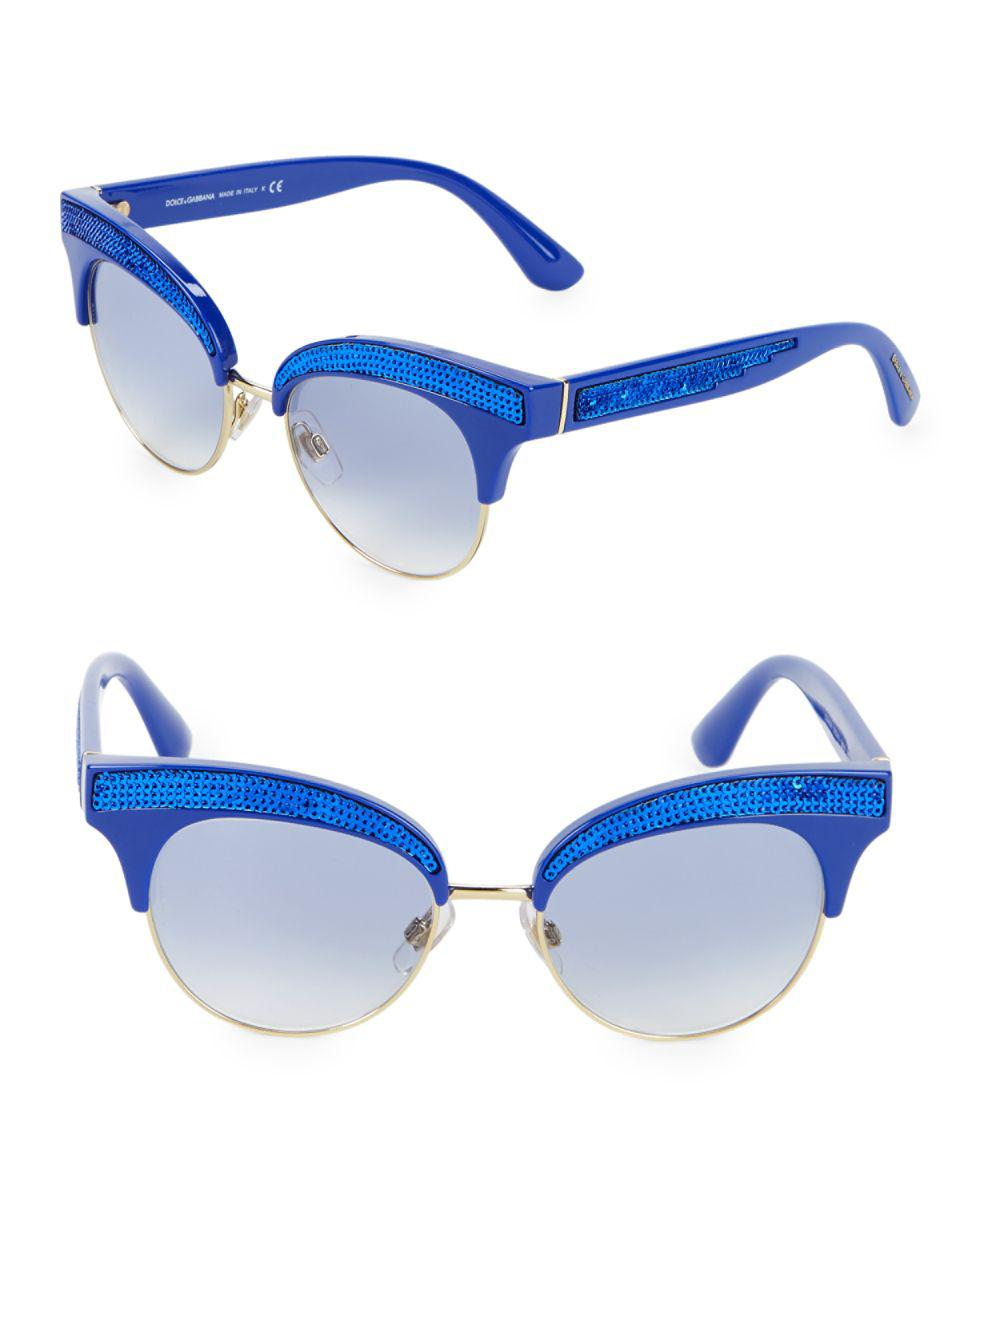 d0ed055ecb78 Lyst - Dolce   Gabbana 50mm Sequin Trim Cateye Sunglasses in Blue ...